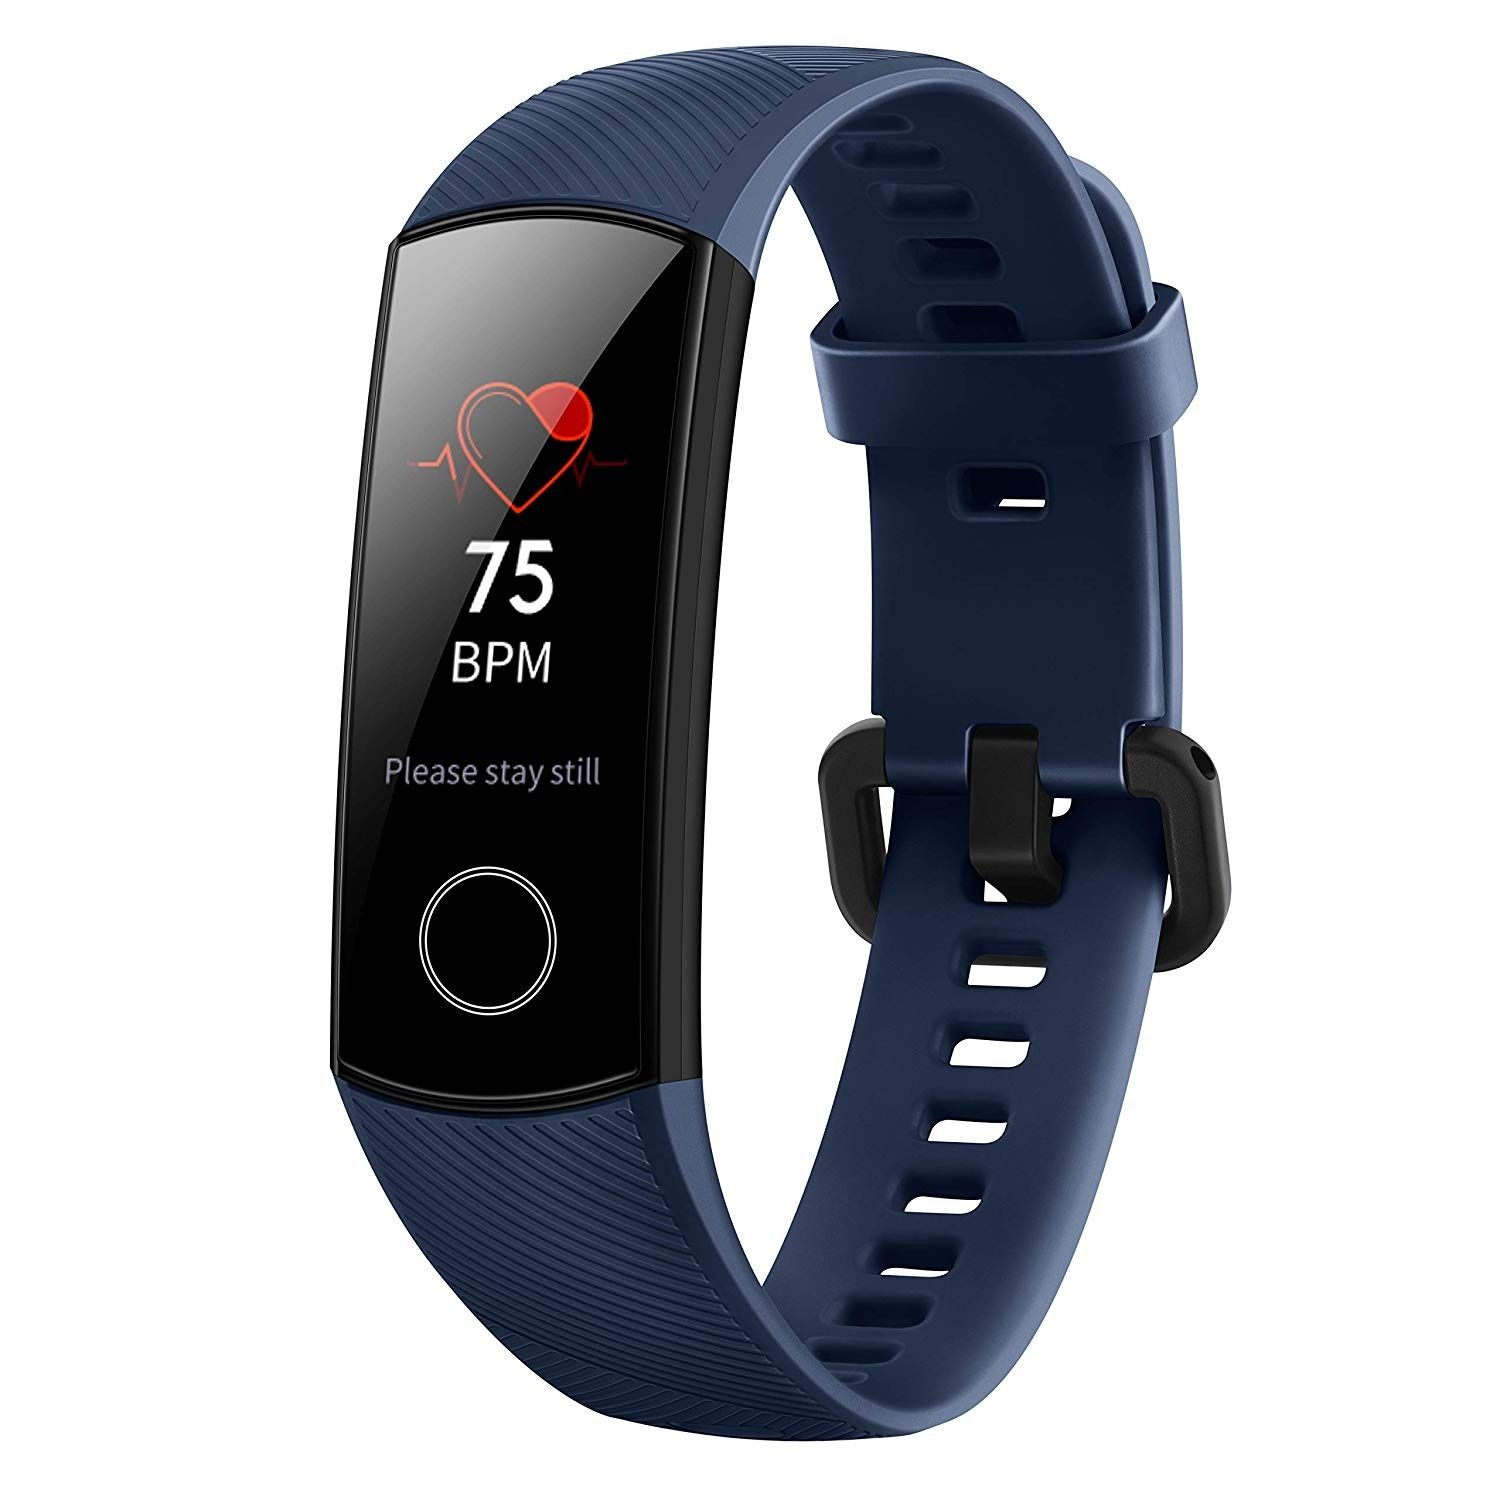 Honor Band 4 is a HighEnd AMOLED Full Color Display Smart